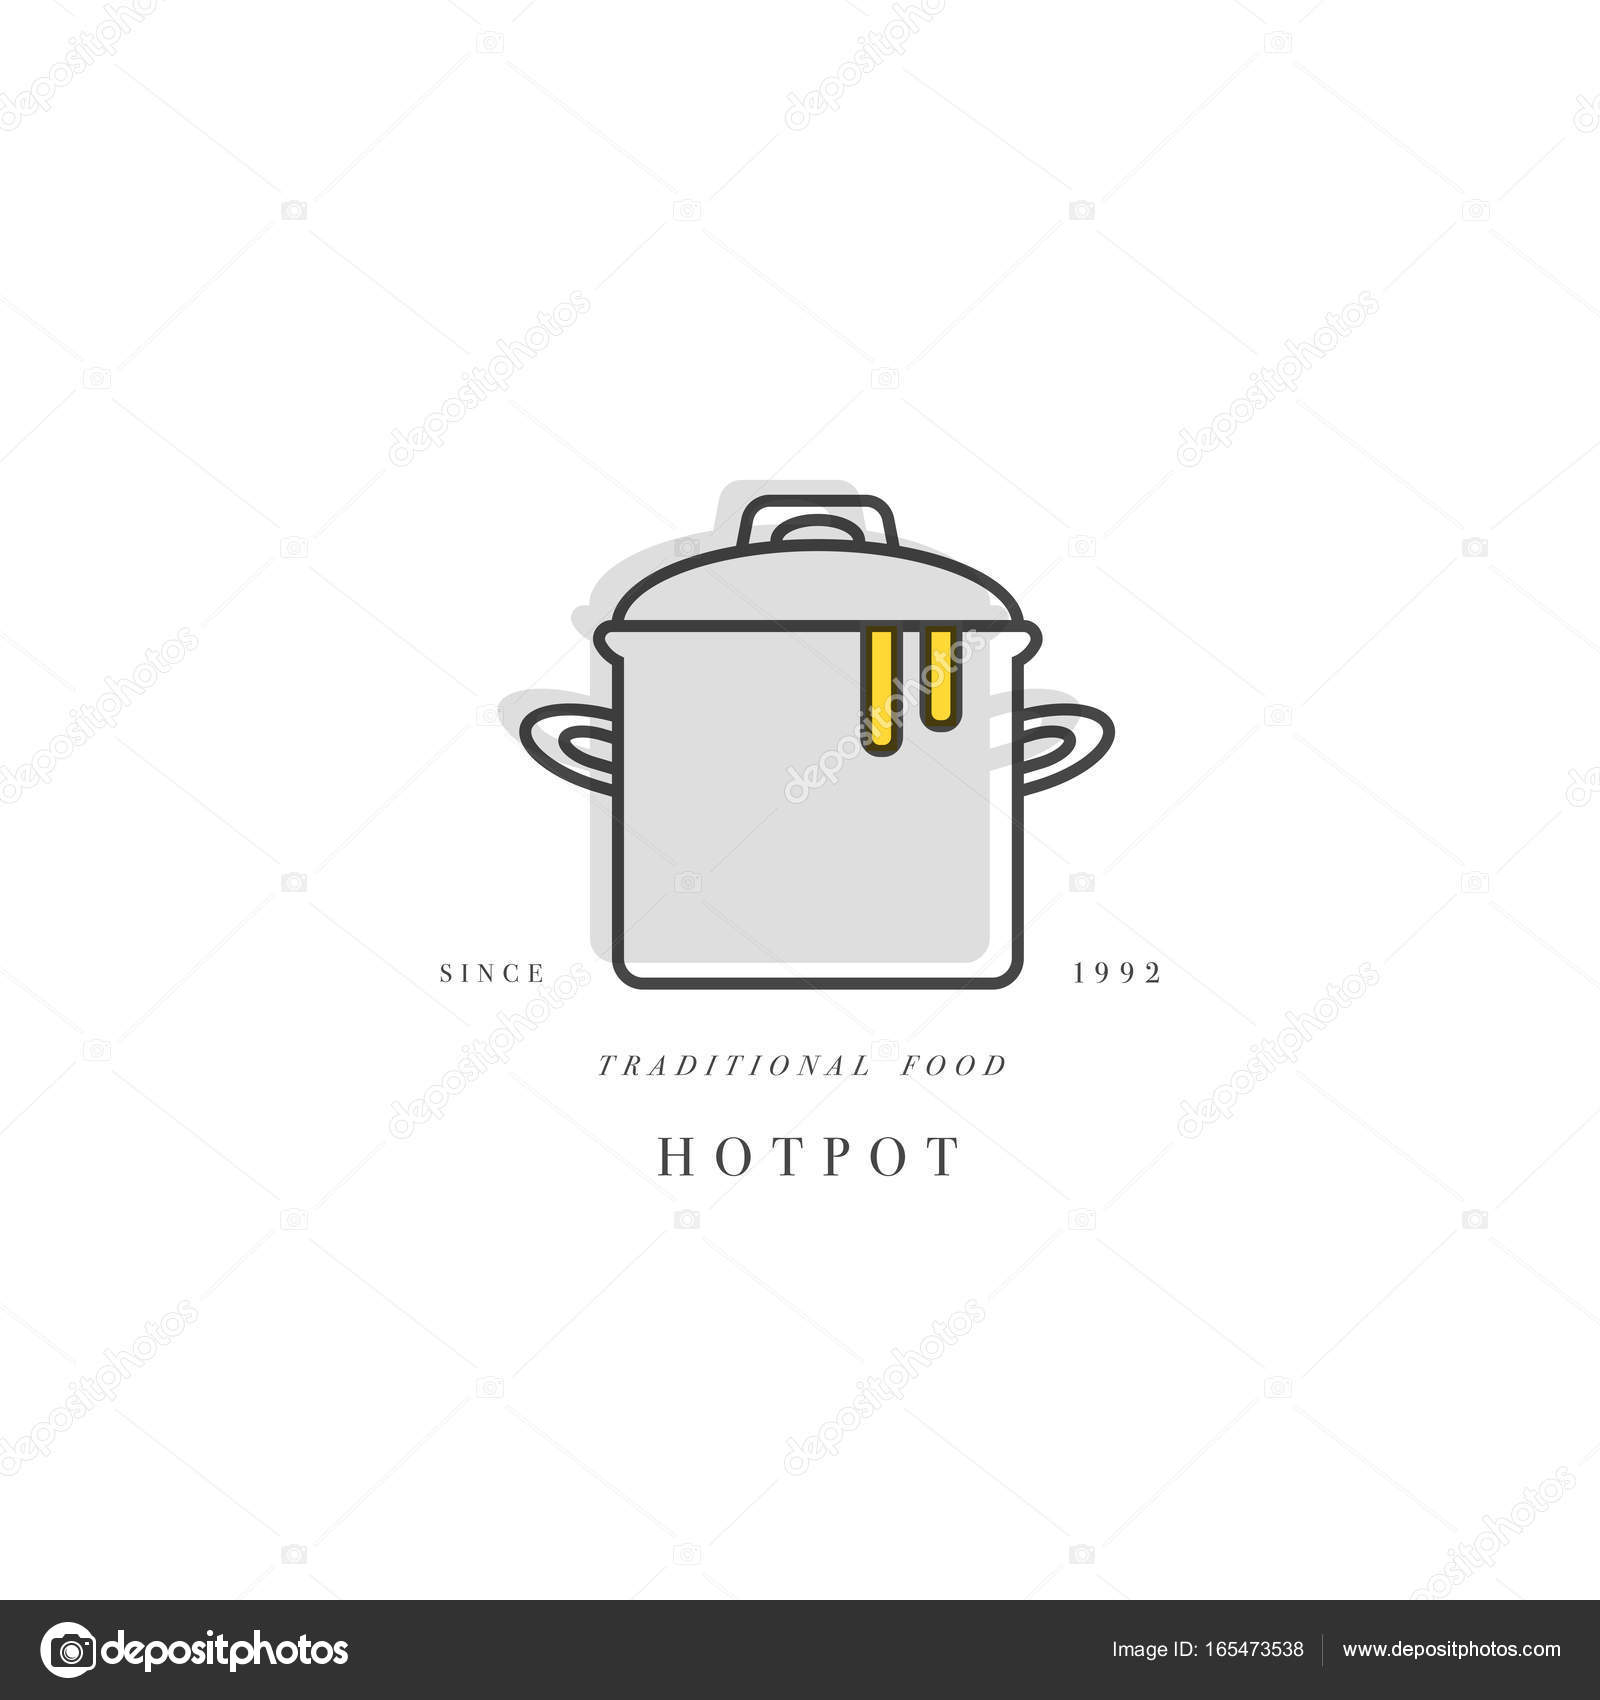 Cooking class linear design element kitchen emblem symbol icon or cooking class linear design element kitchen emblem symbol icon or food cooking label hotpot icon pan vector by oxygen8 ccuart Image collections